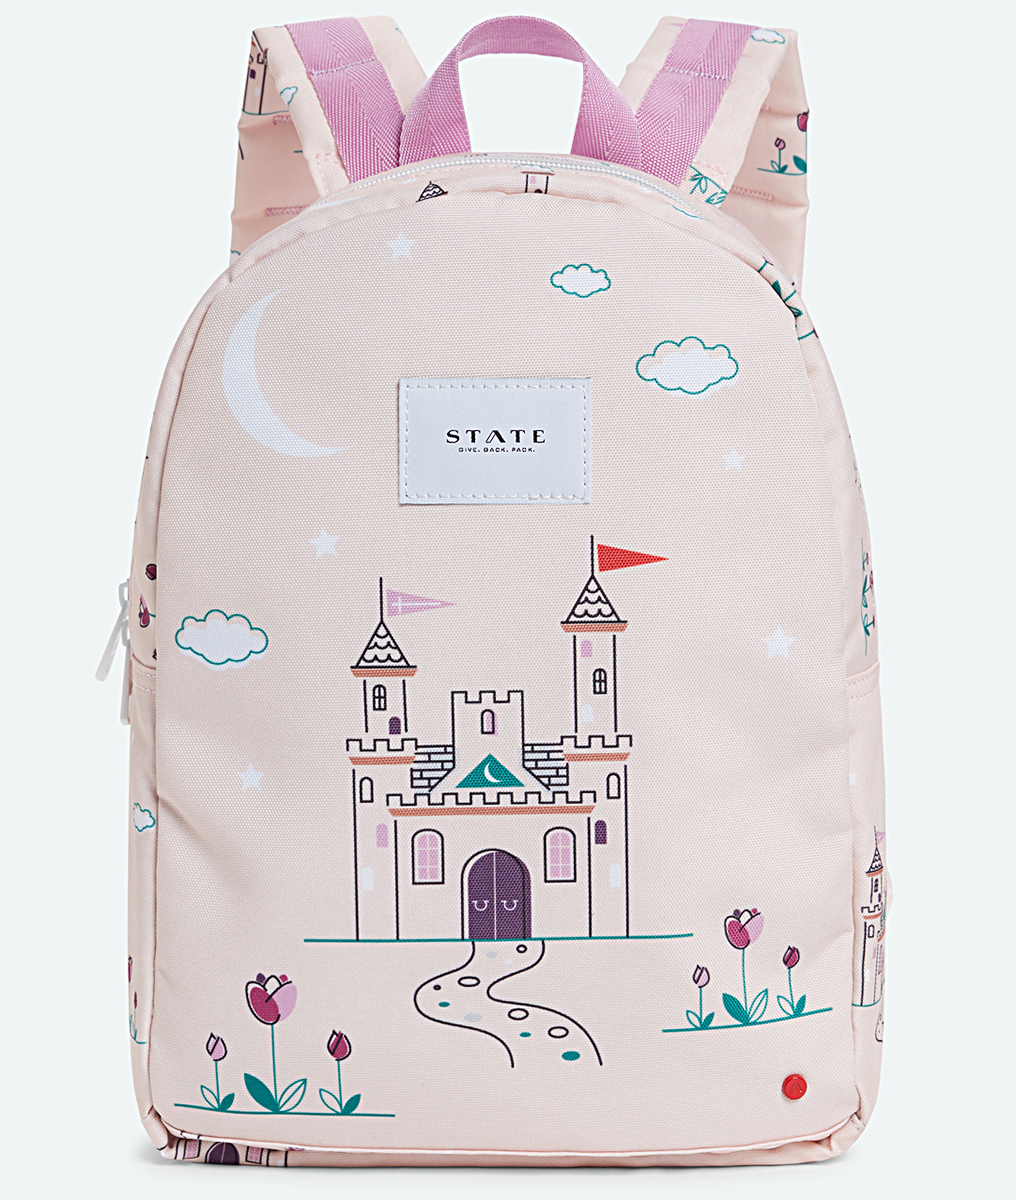 9dcb8c5c5 State Bags Mini Kane Backpack - Fairytale